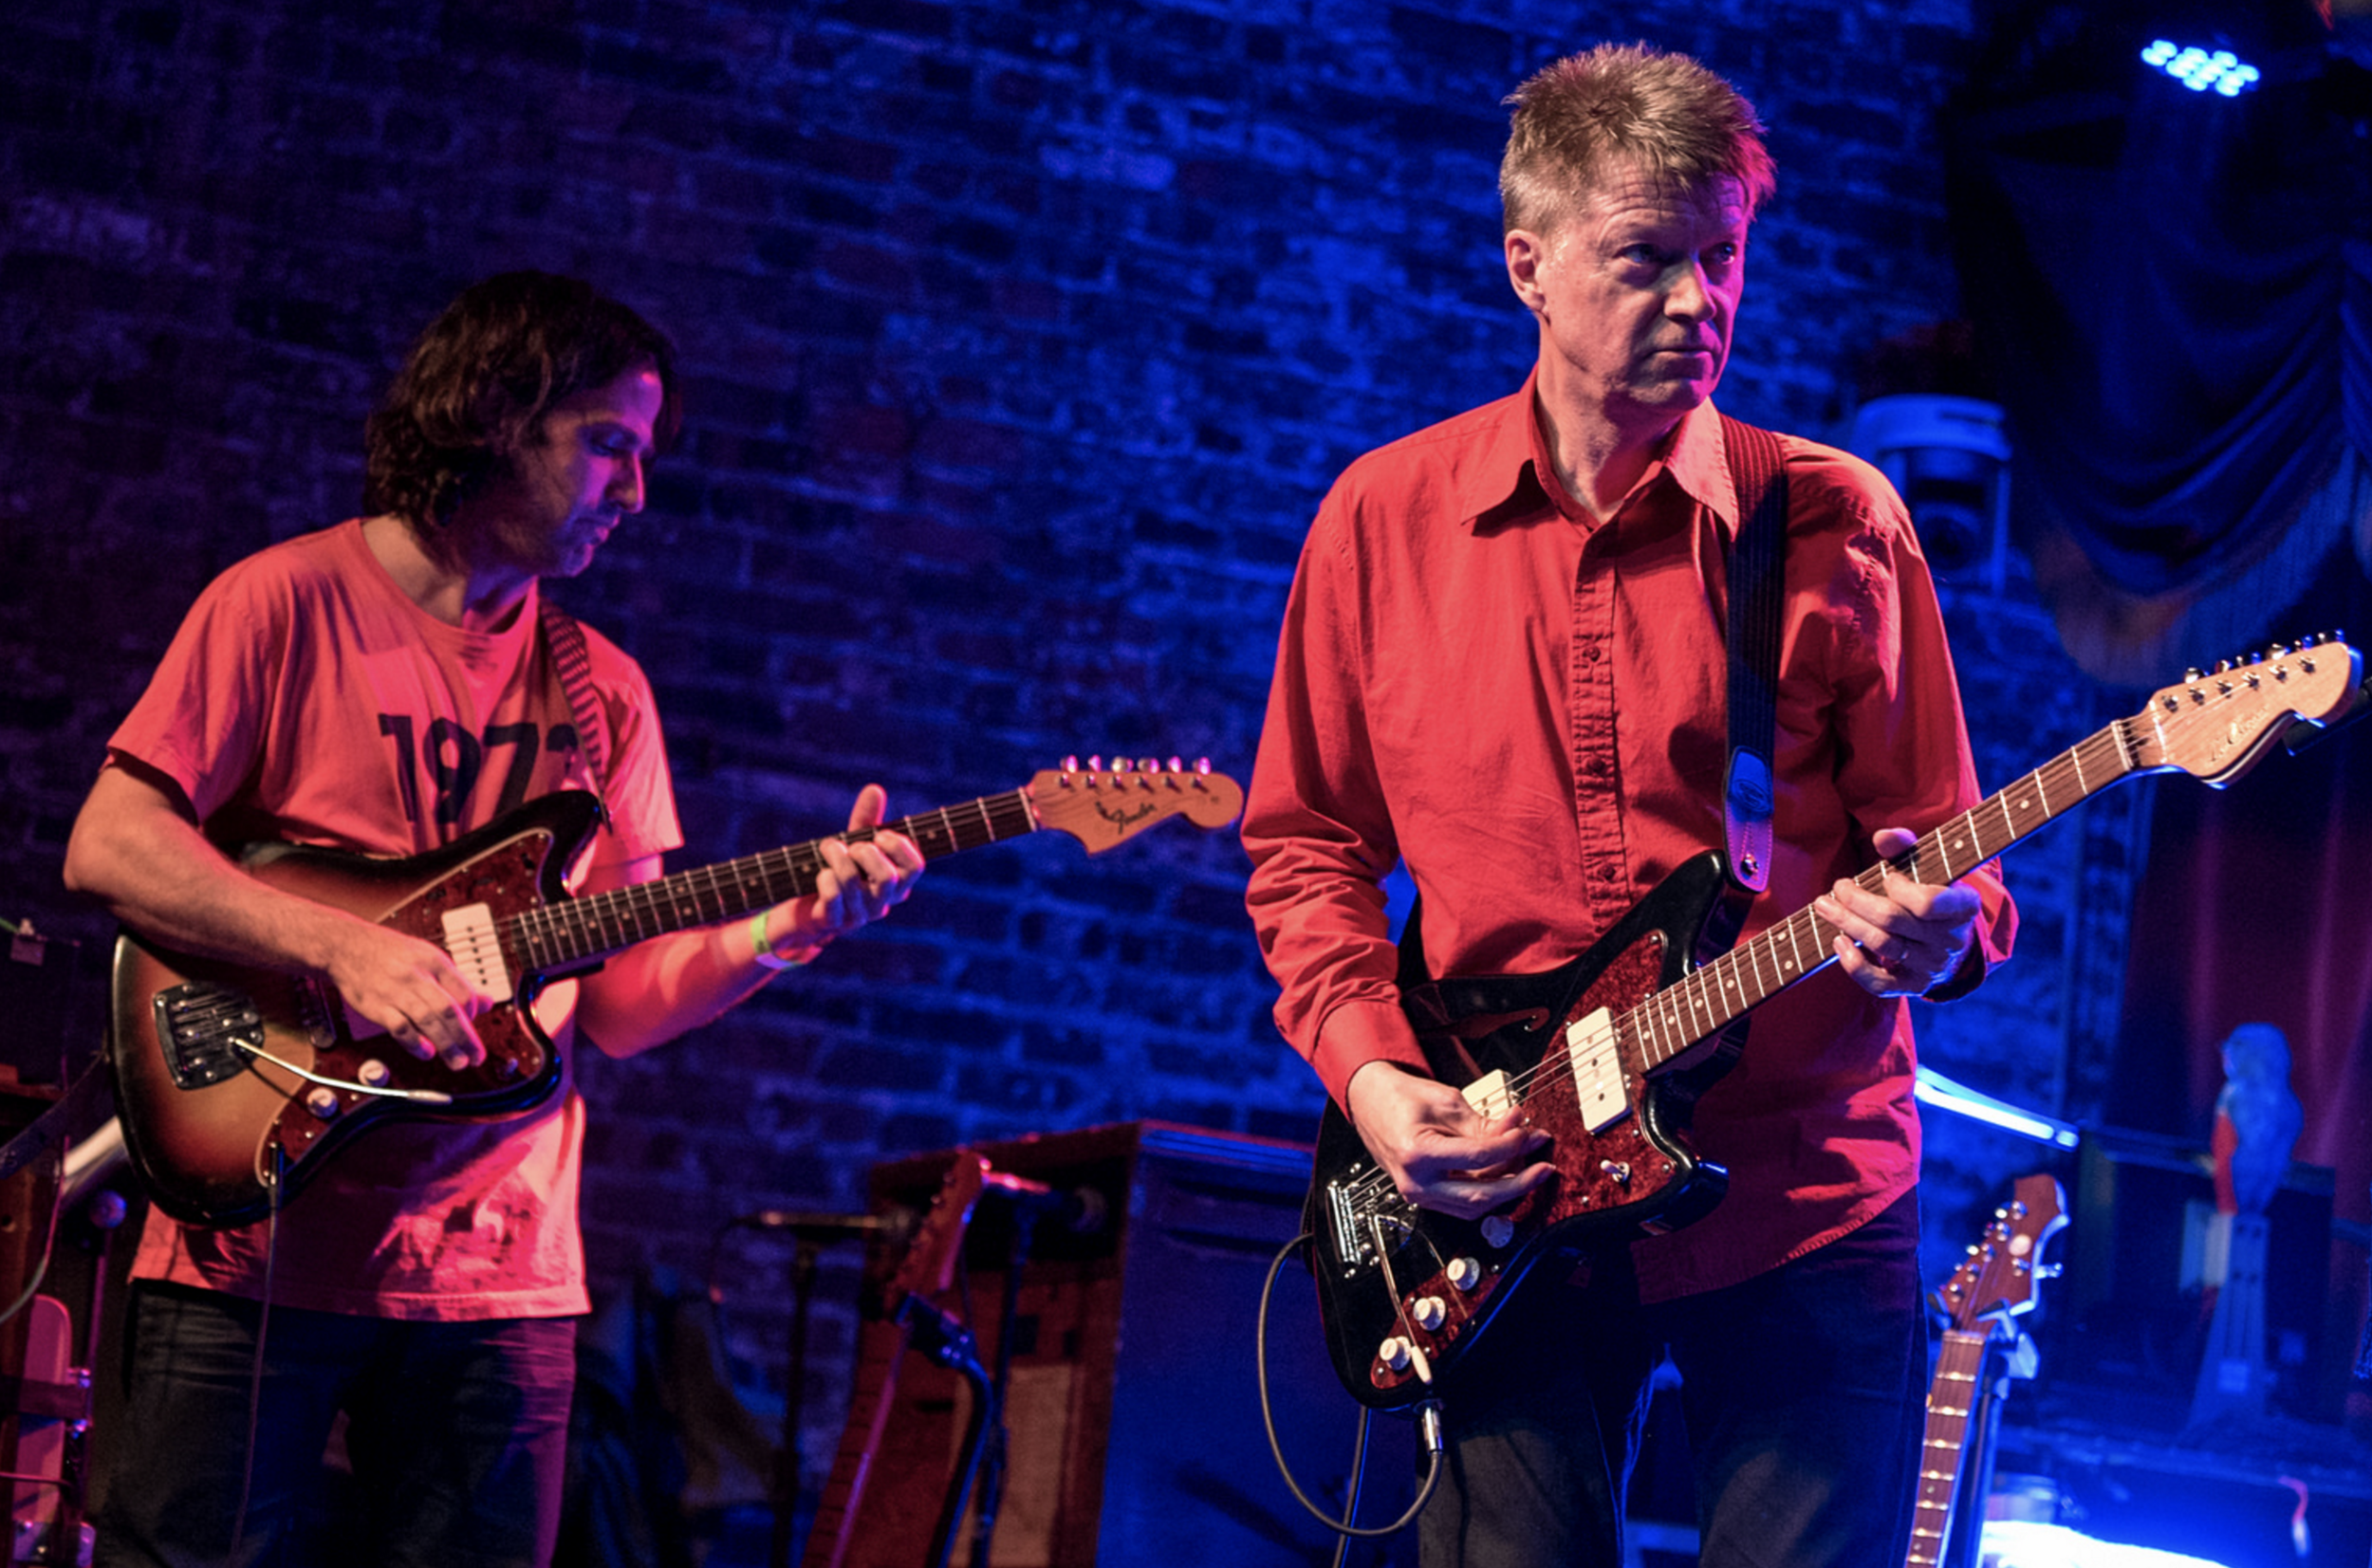 With Nels Cline. NYC 5/2017